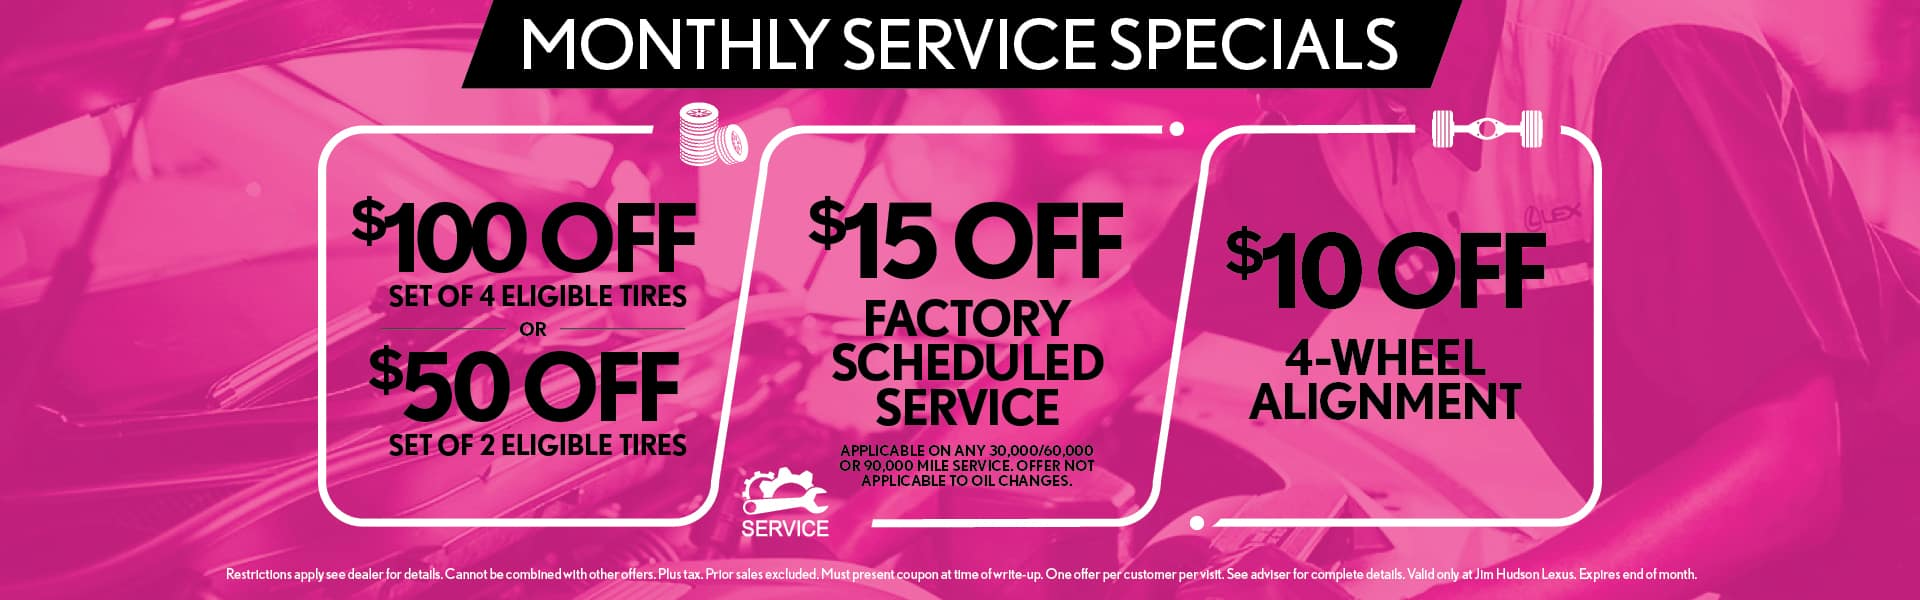 1854500-JHL-OCT SERVICE OFFER WEB BANNERS2-1920×600